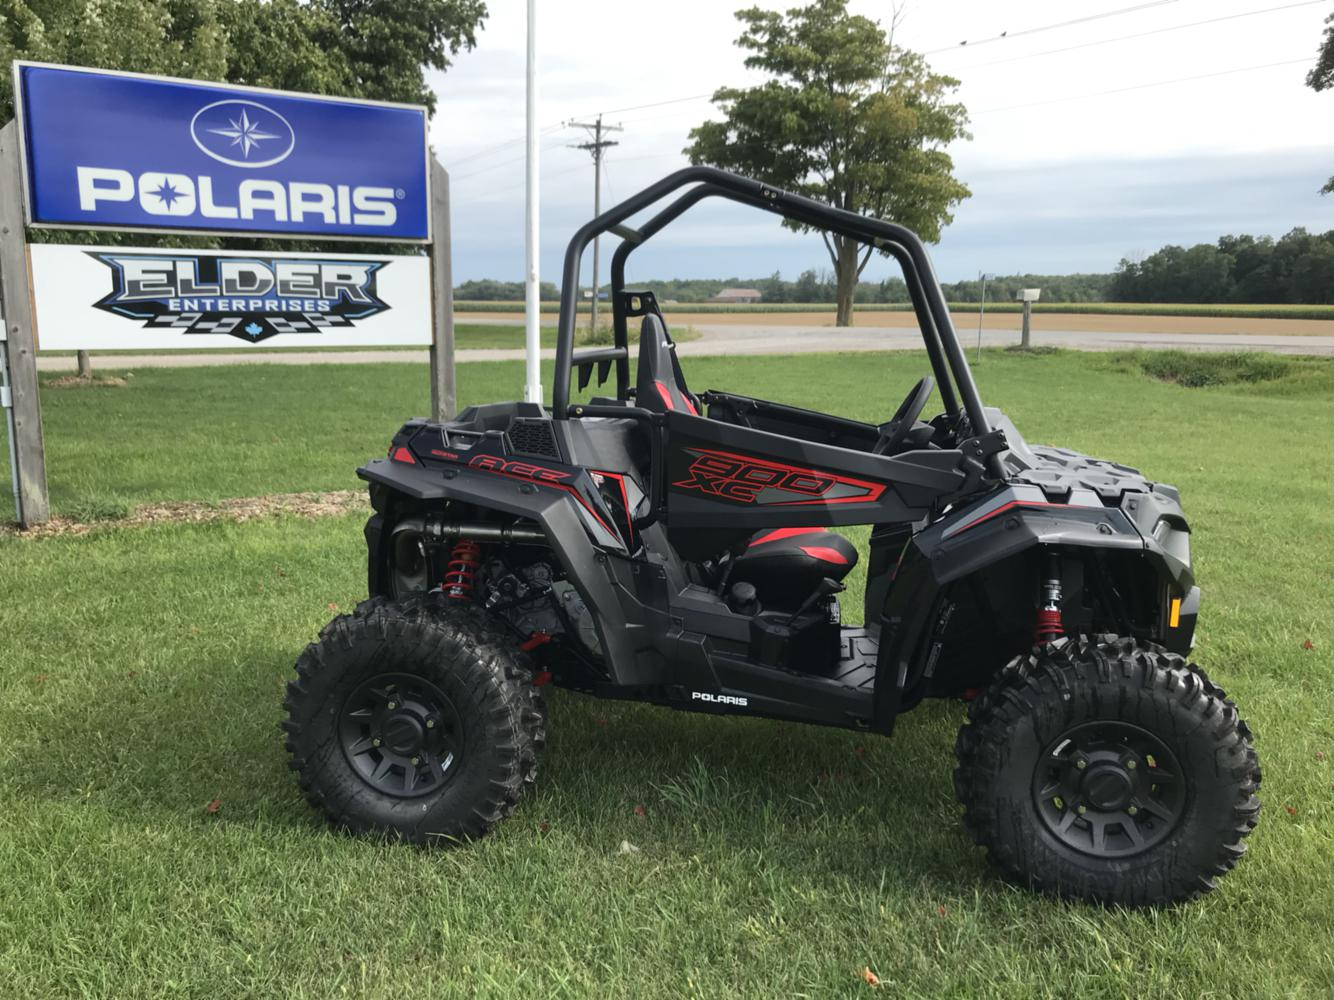 Polaris Ace For Sale >> 2019 Polaris Industries Polaris Ace 900 Xc Black Pearl